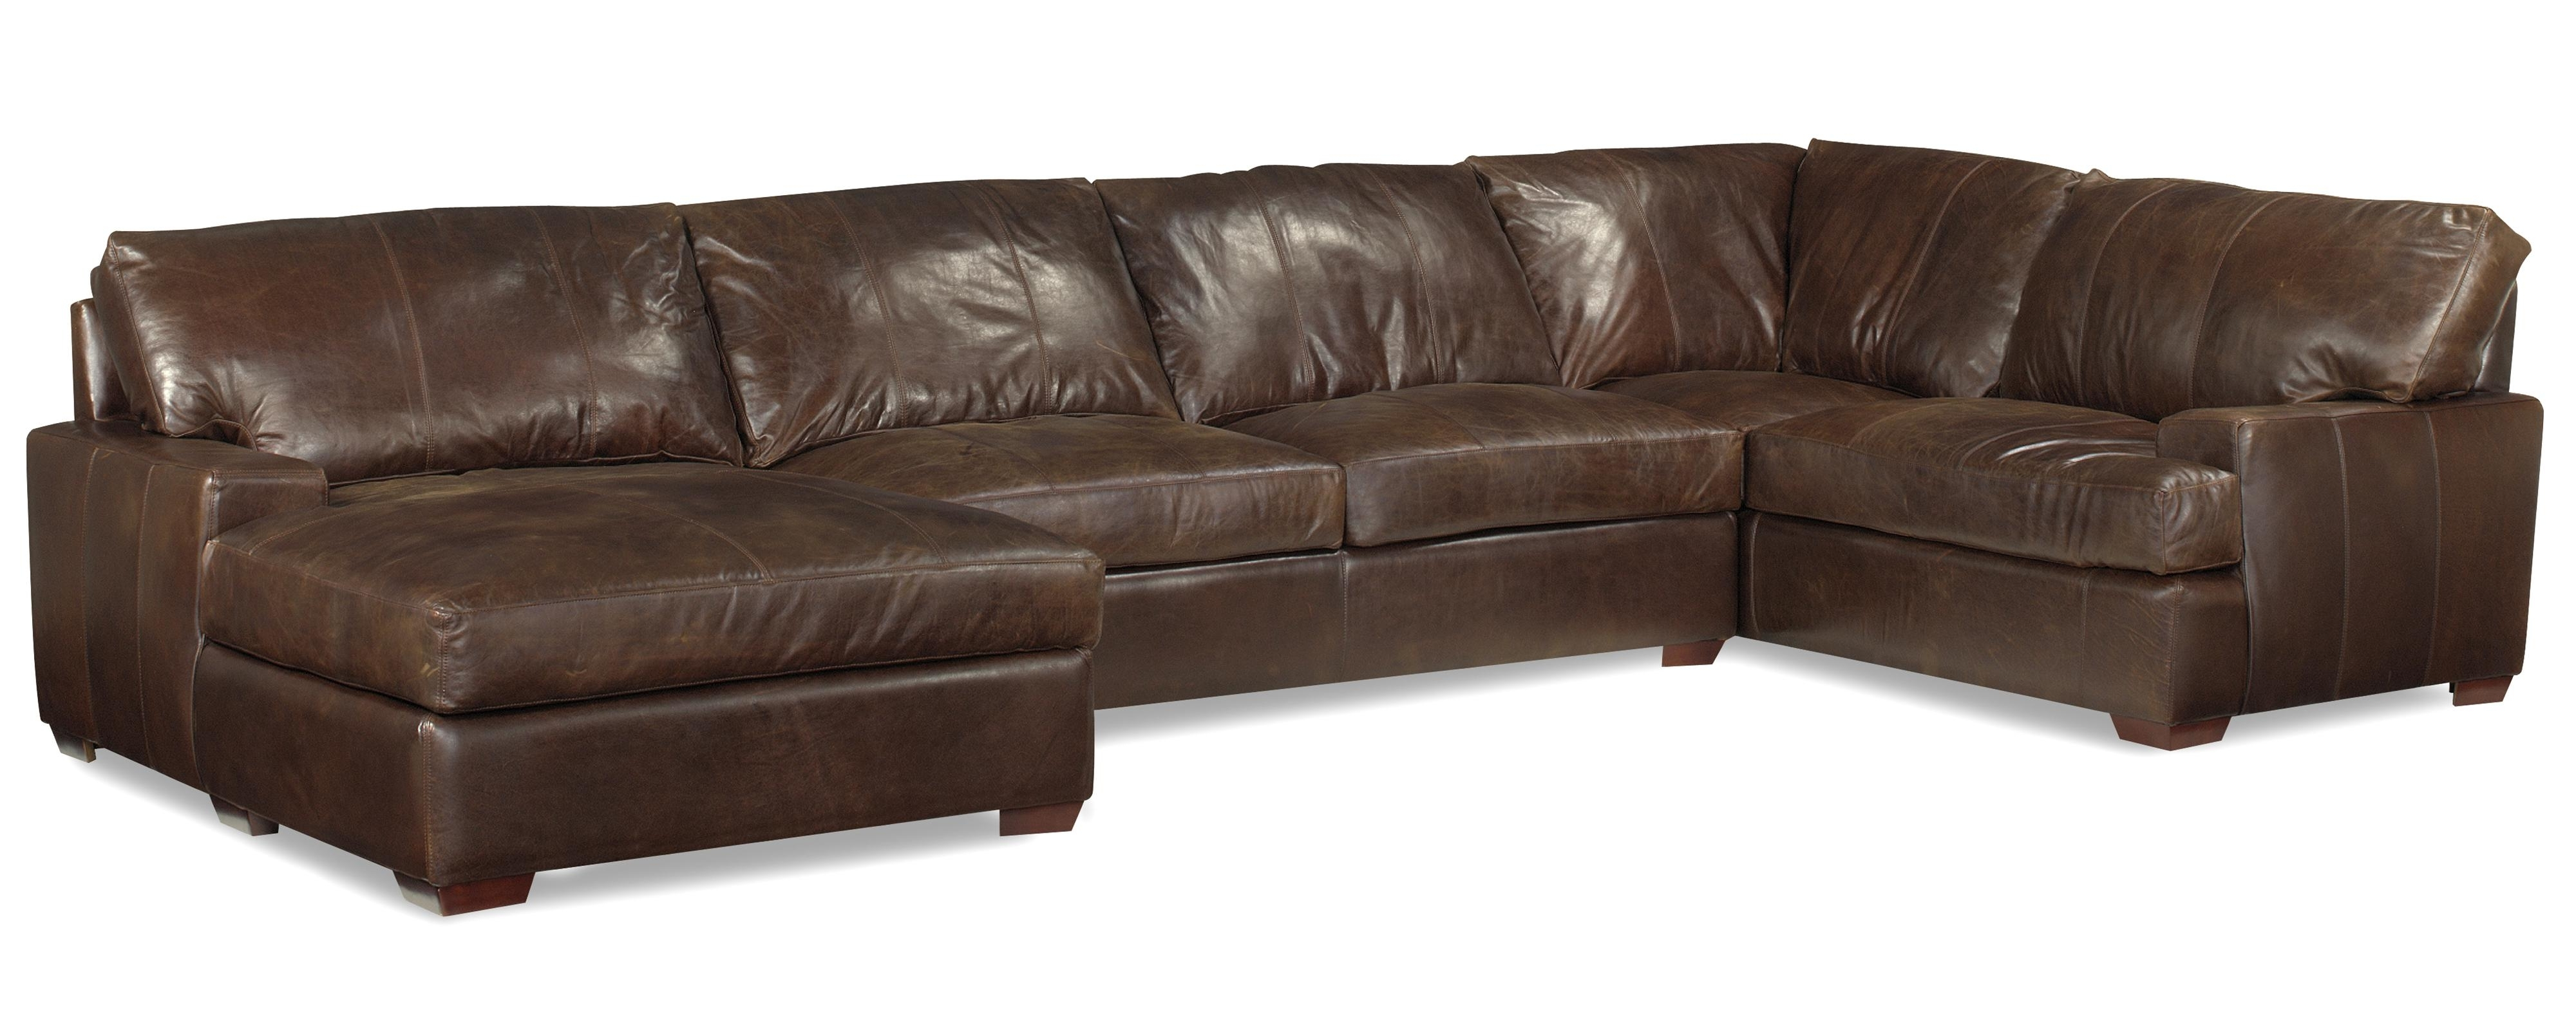 Sectional Sofa Chaises Within Most Recently Released Usa Premium Leather 3635 Track Arm Sofa Chaise Sectional W/ Block (View 8 of 15)